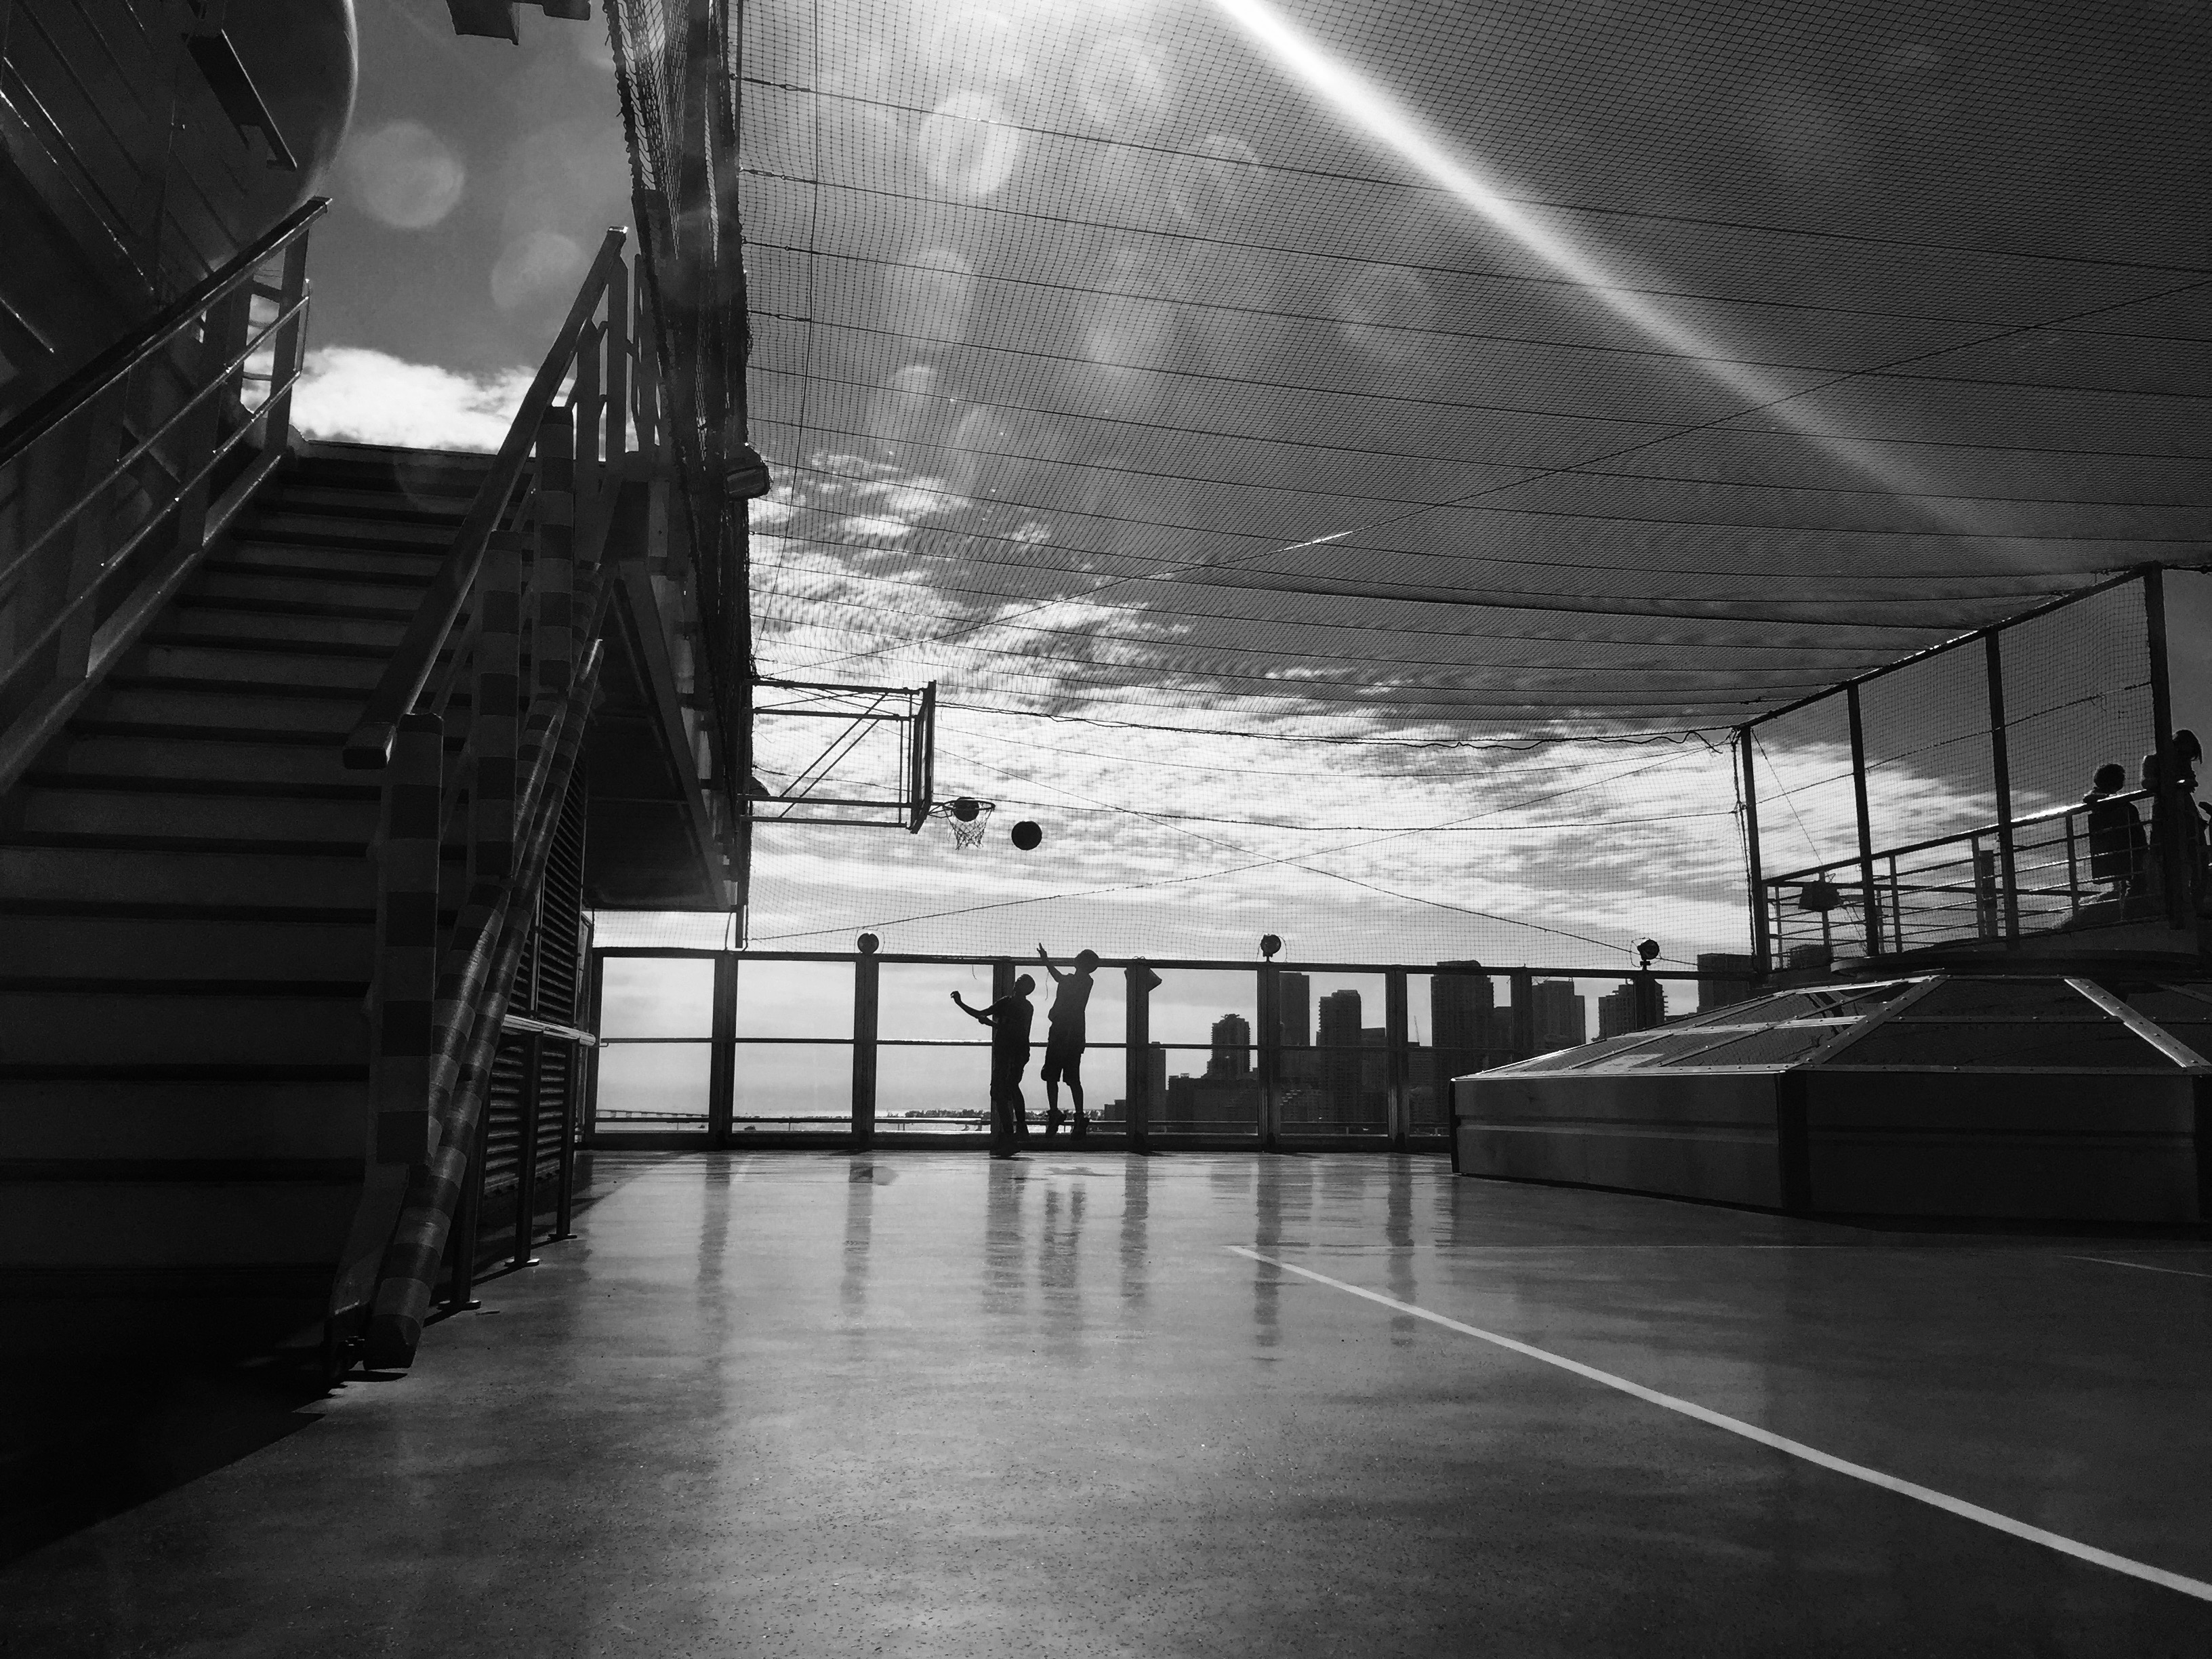 The outdoor basketball court on the Carnival Glory.